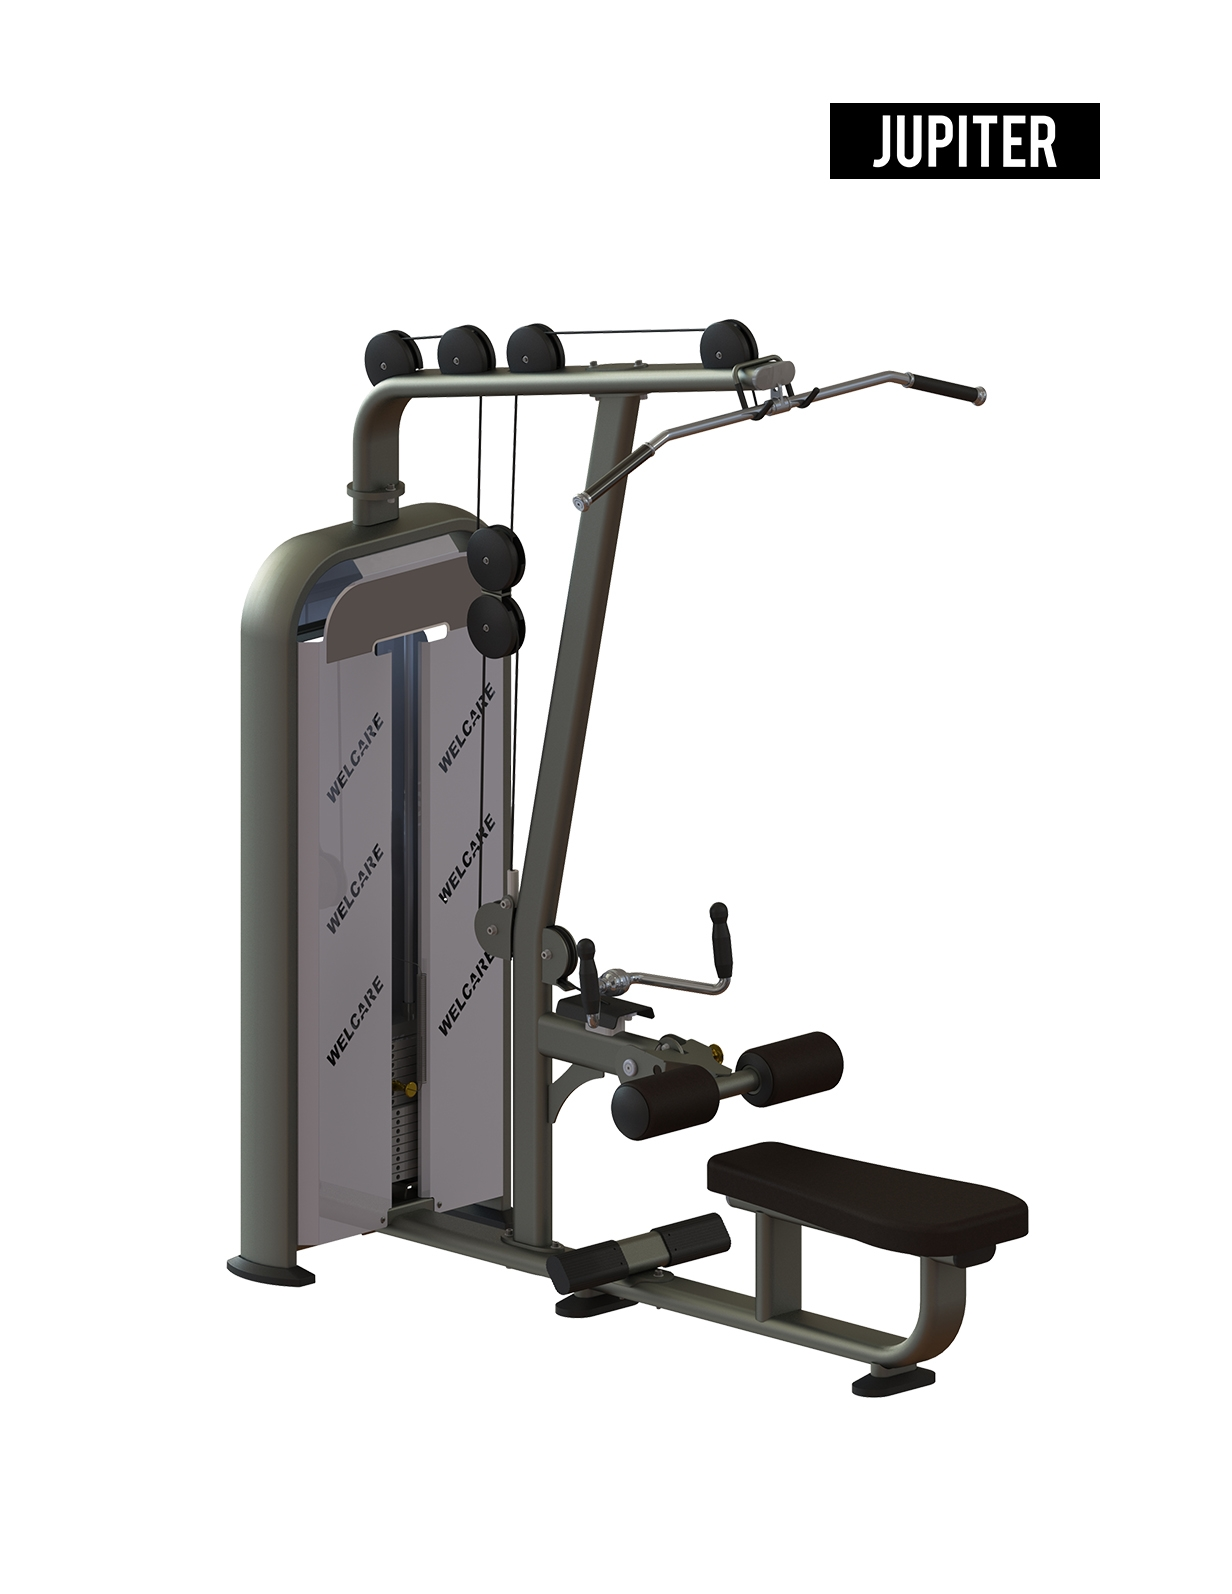 JL8915 LAT PULLDOWN/ SEATED ROW